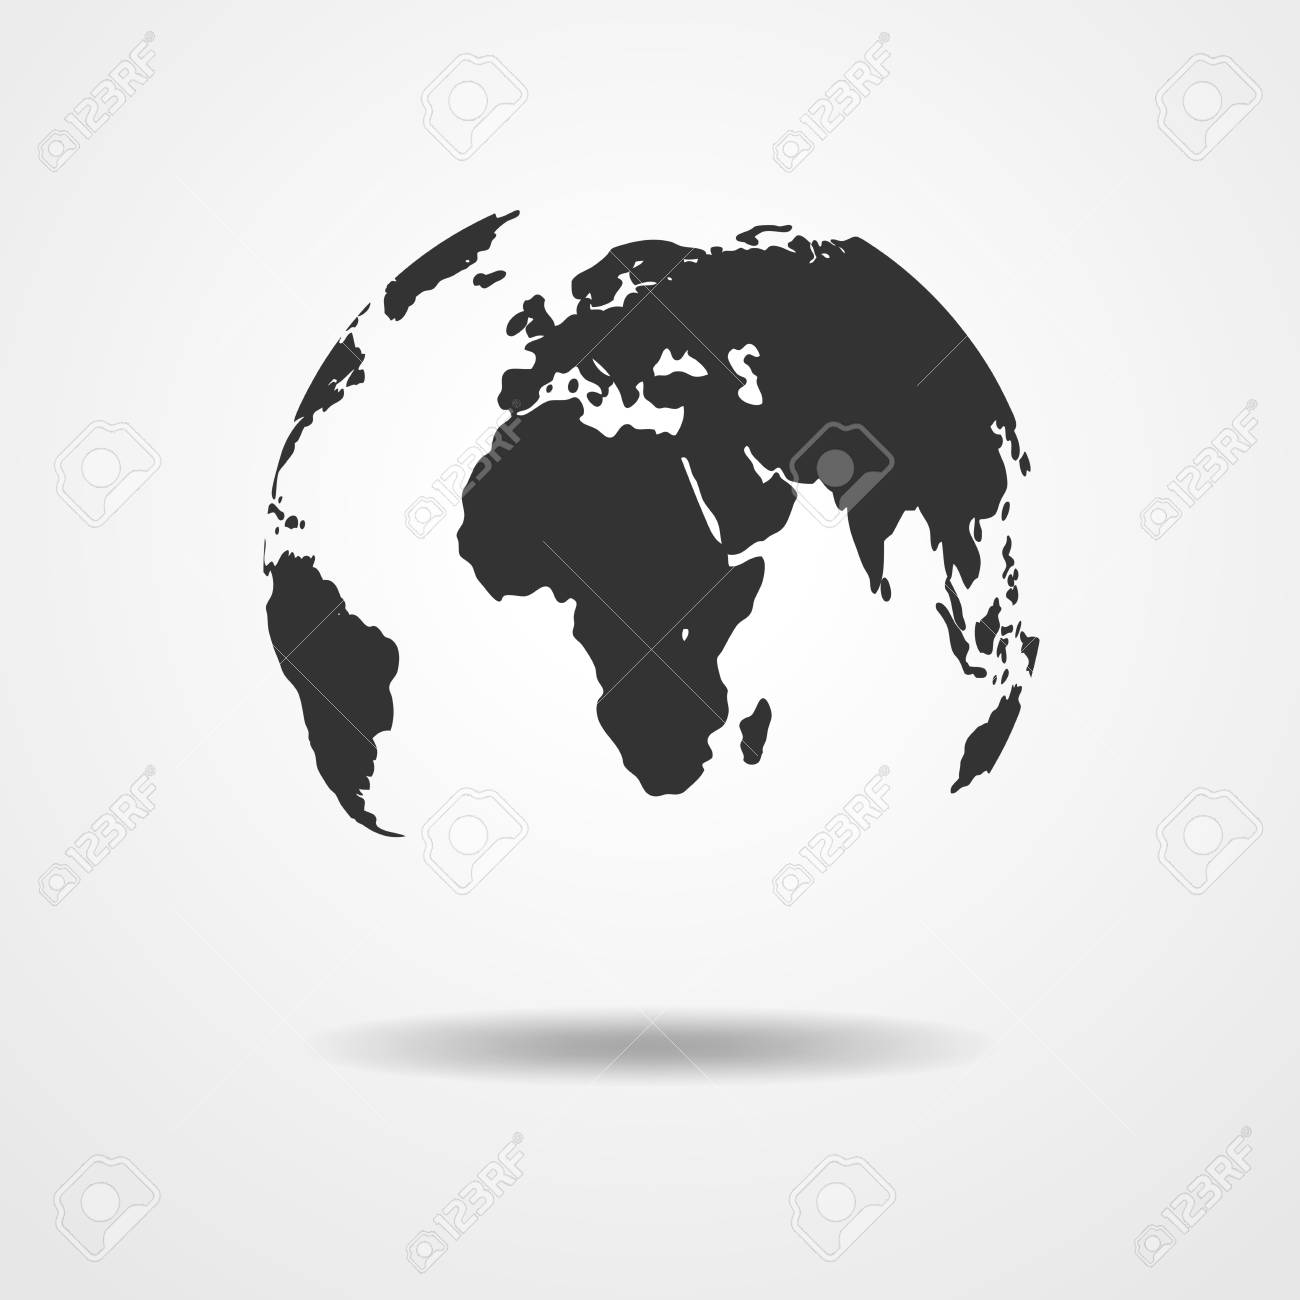 Black And White Vector Earth Globe Isolated On White. Black Simple Scheme  Of The Globe